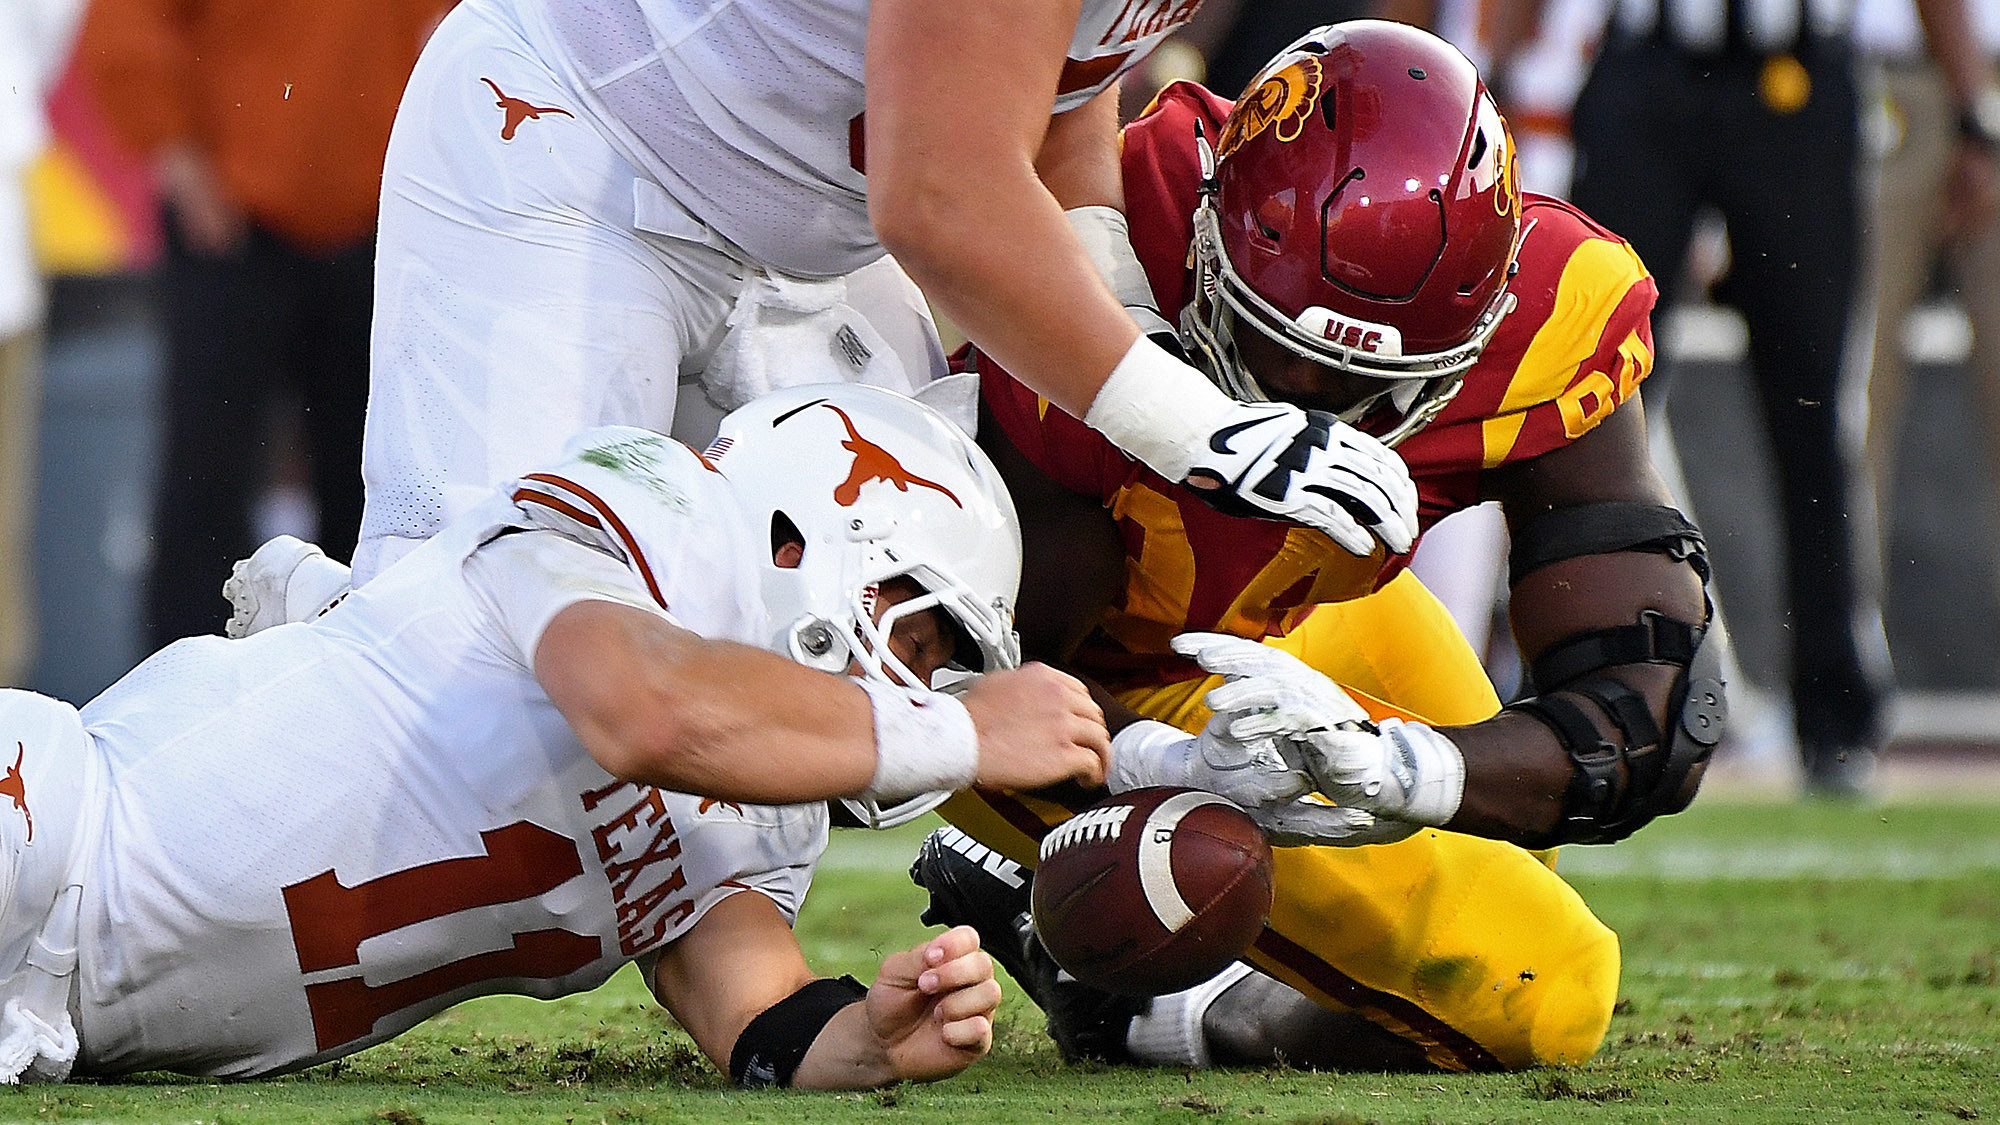 Texas quarterback Sam Ehlinger fumbles the ball in front of USC defensive lineman Rasheem Green during the first quarter of a game at the Coliseum. The Trojans recovered the ball. (Wally Skalij / Los Angeles Times)